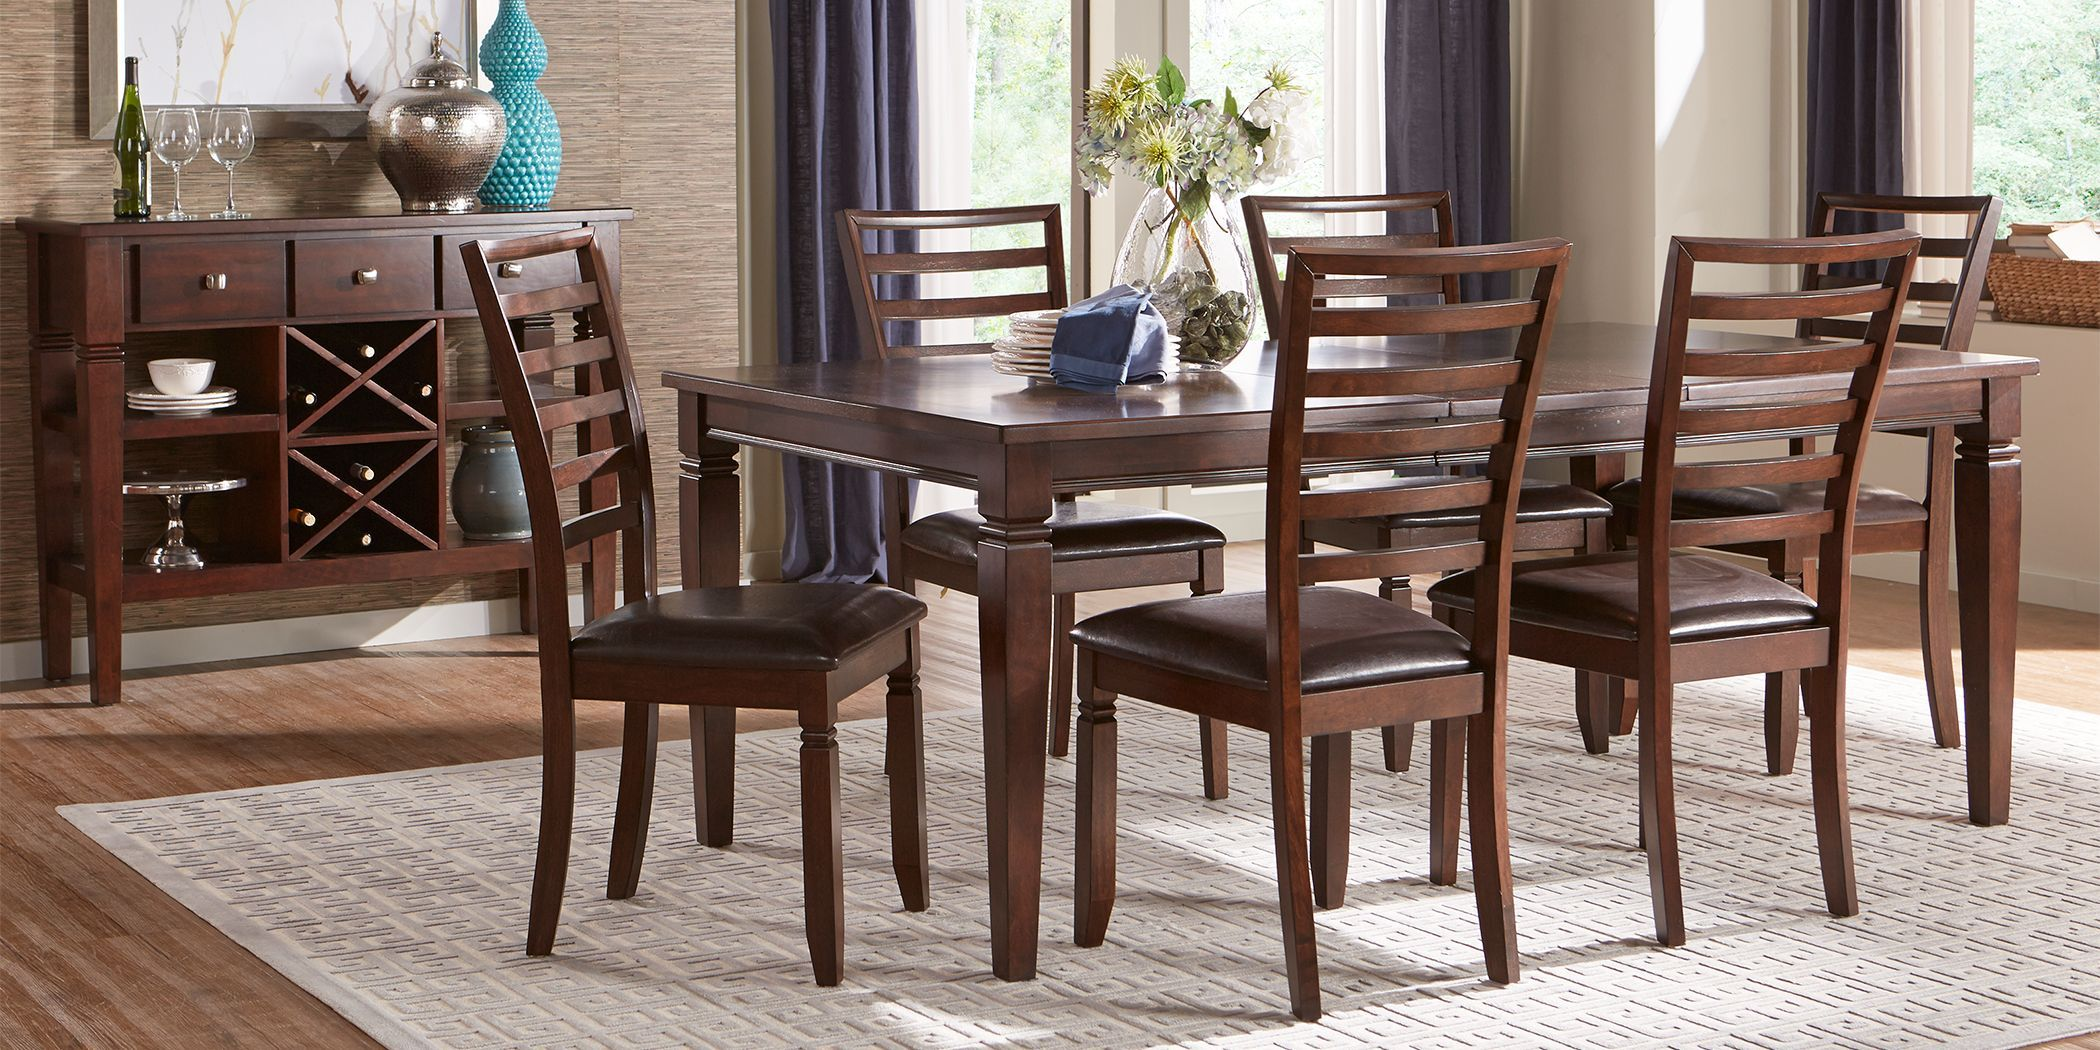 Riverdale Cherry 5 Pc Rectangle Dining Room With Ladder Back Chairs Dining Room Sets Rooms To Go Furniture Classic Dining Room